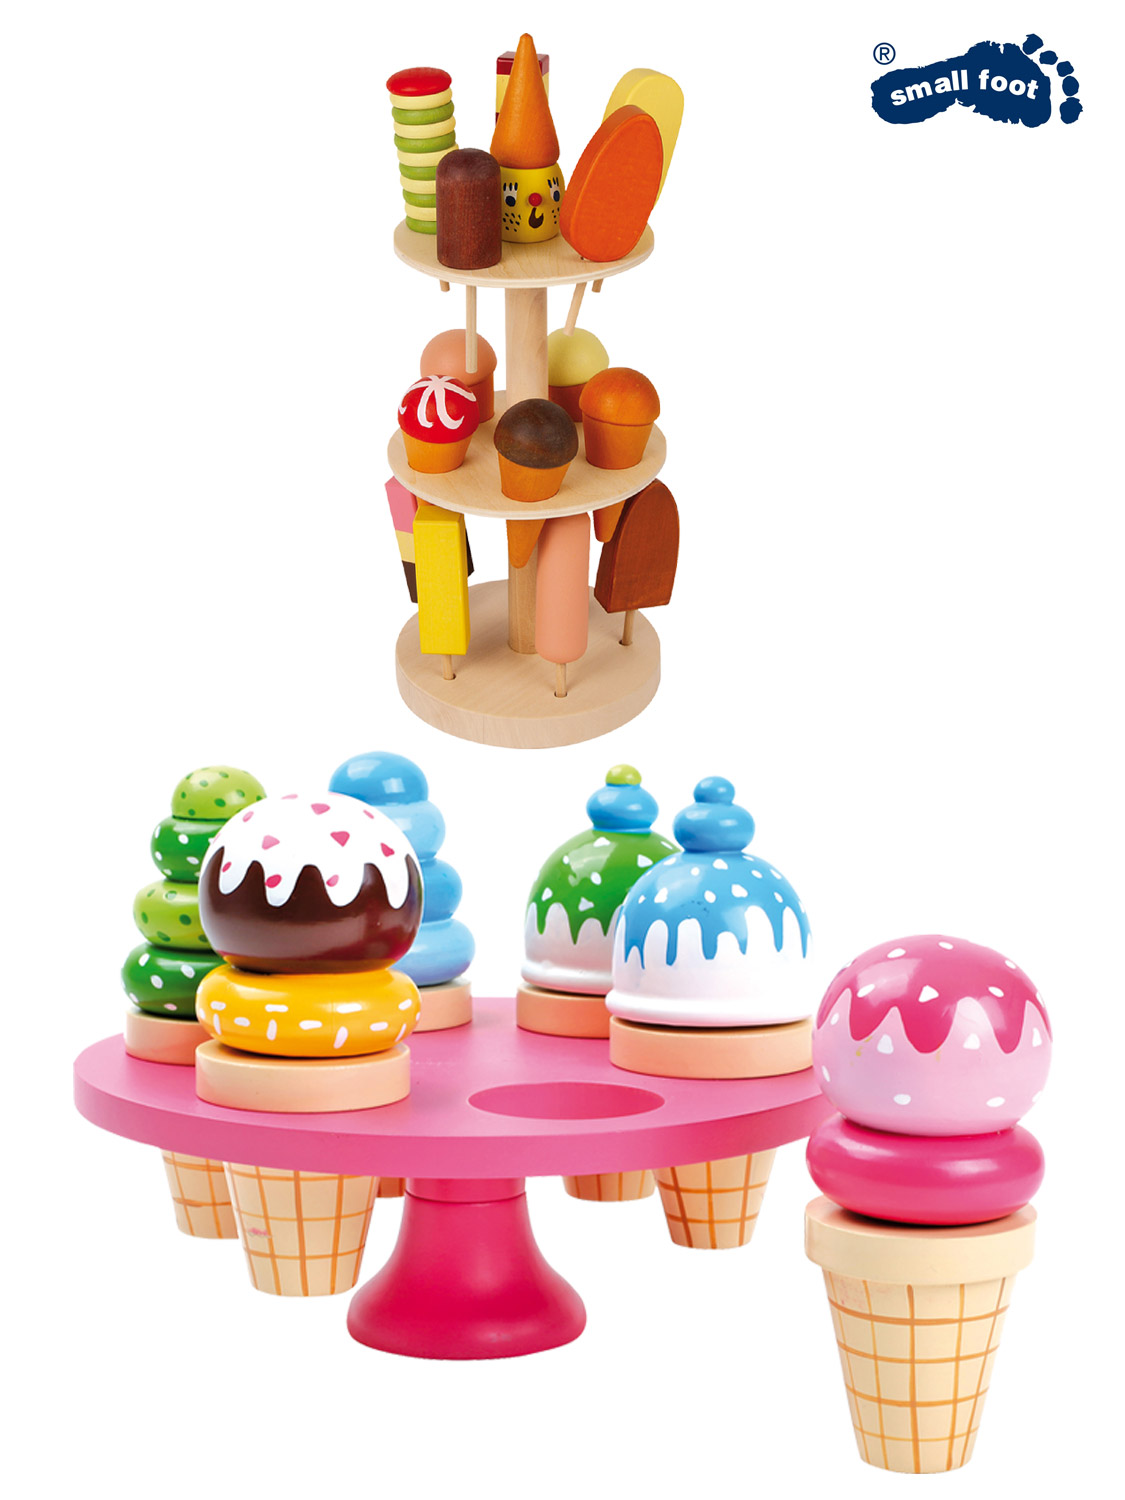 details about wooden ice cream toy food role play kitchen teddy bear picnic  childrens girls